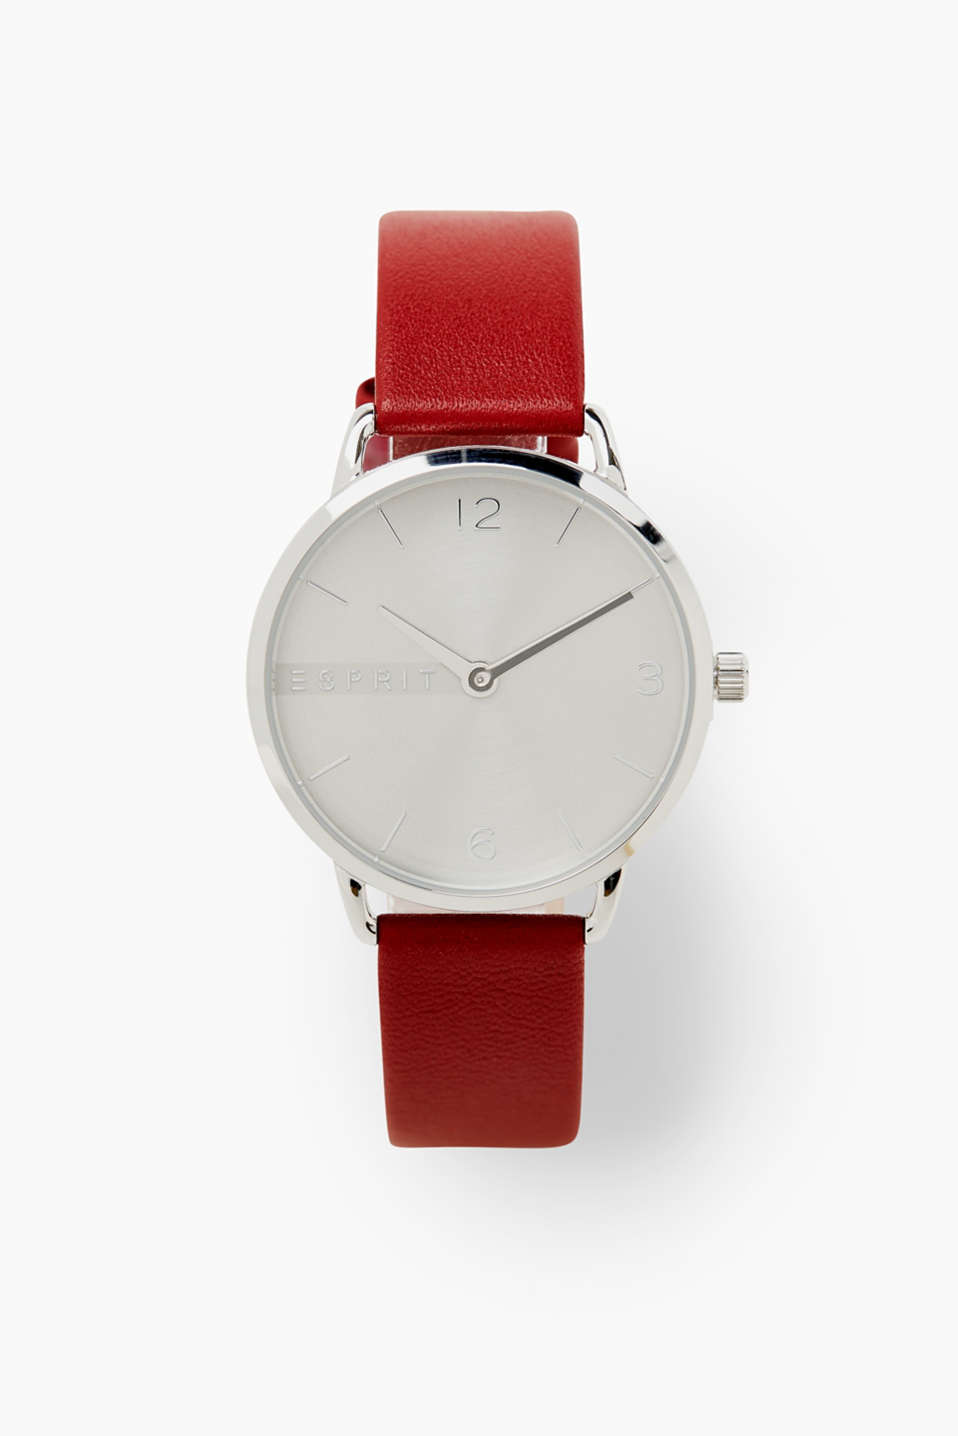 Esprit - Watch with a red leather strap